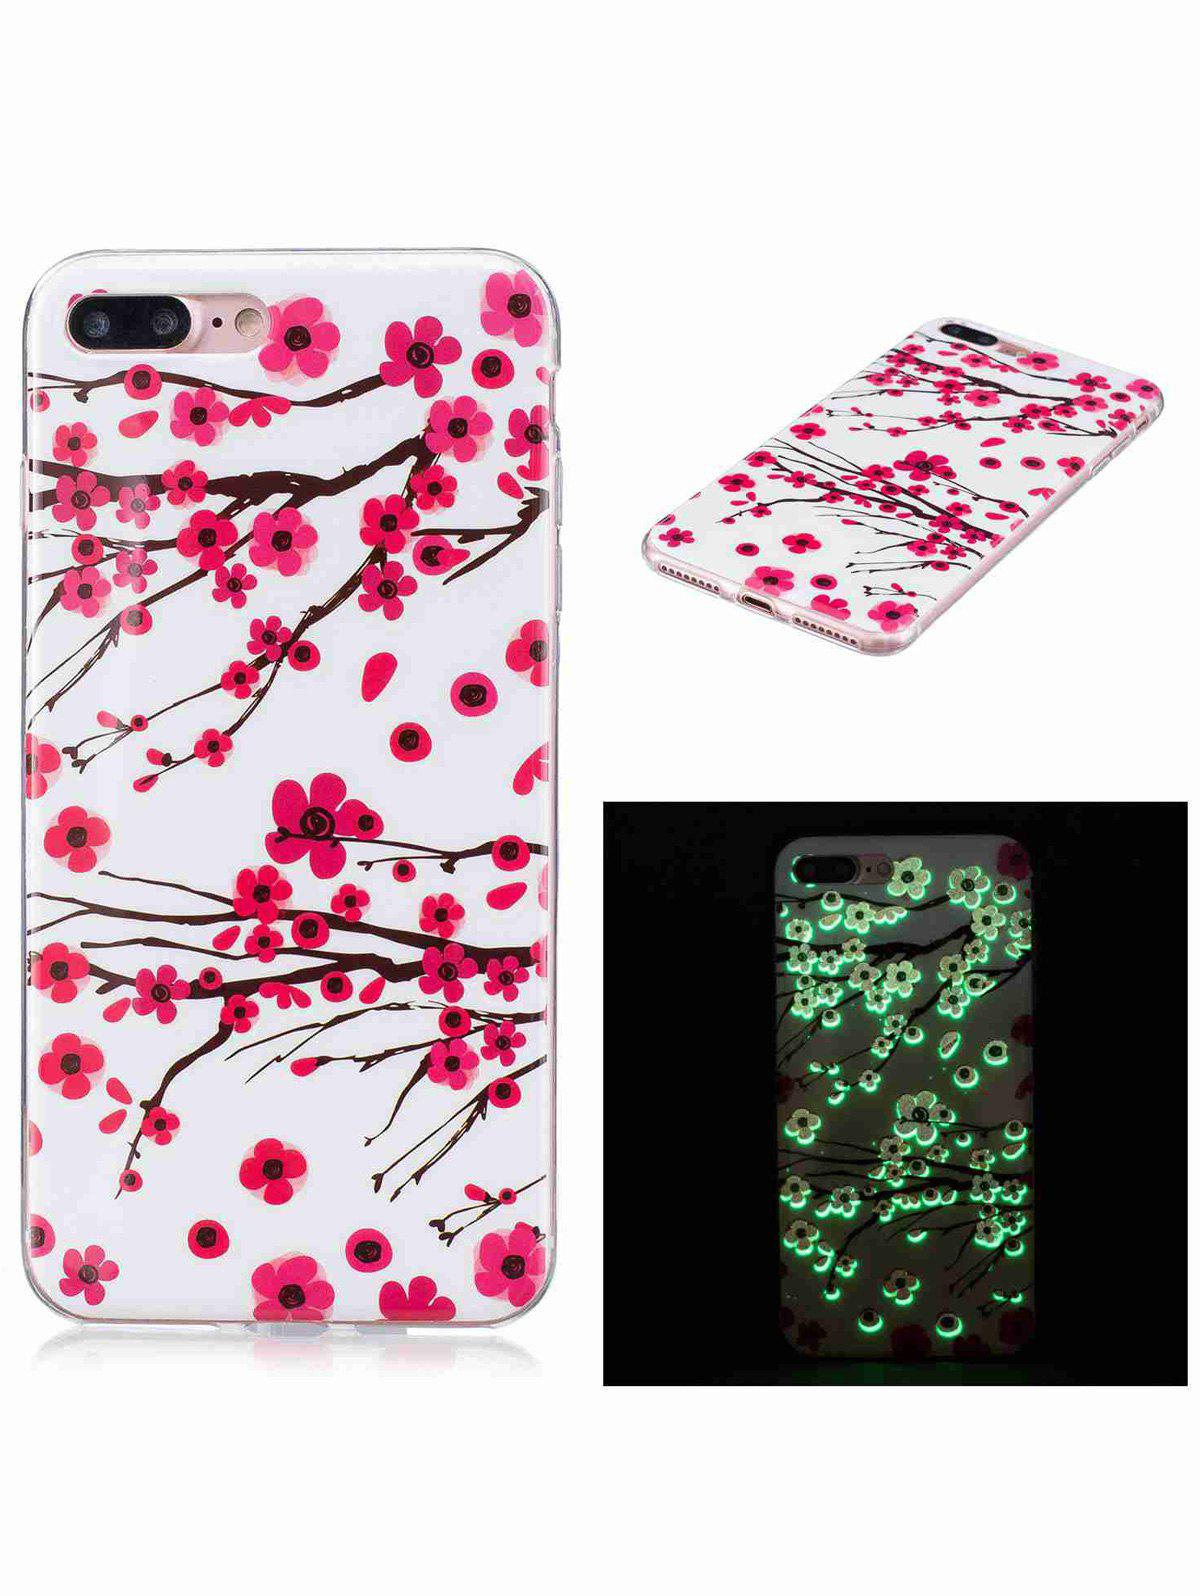 Plum Blossom Luminous Phone Back Cover For iPhone - RED FOR IPHONE 7